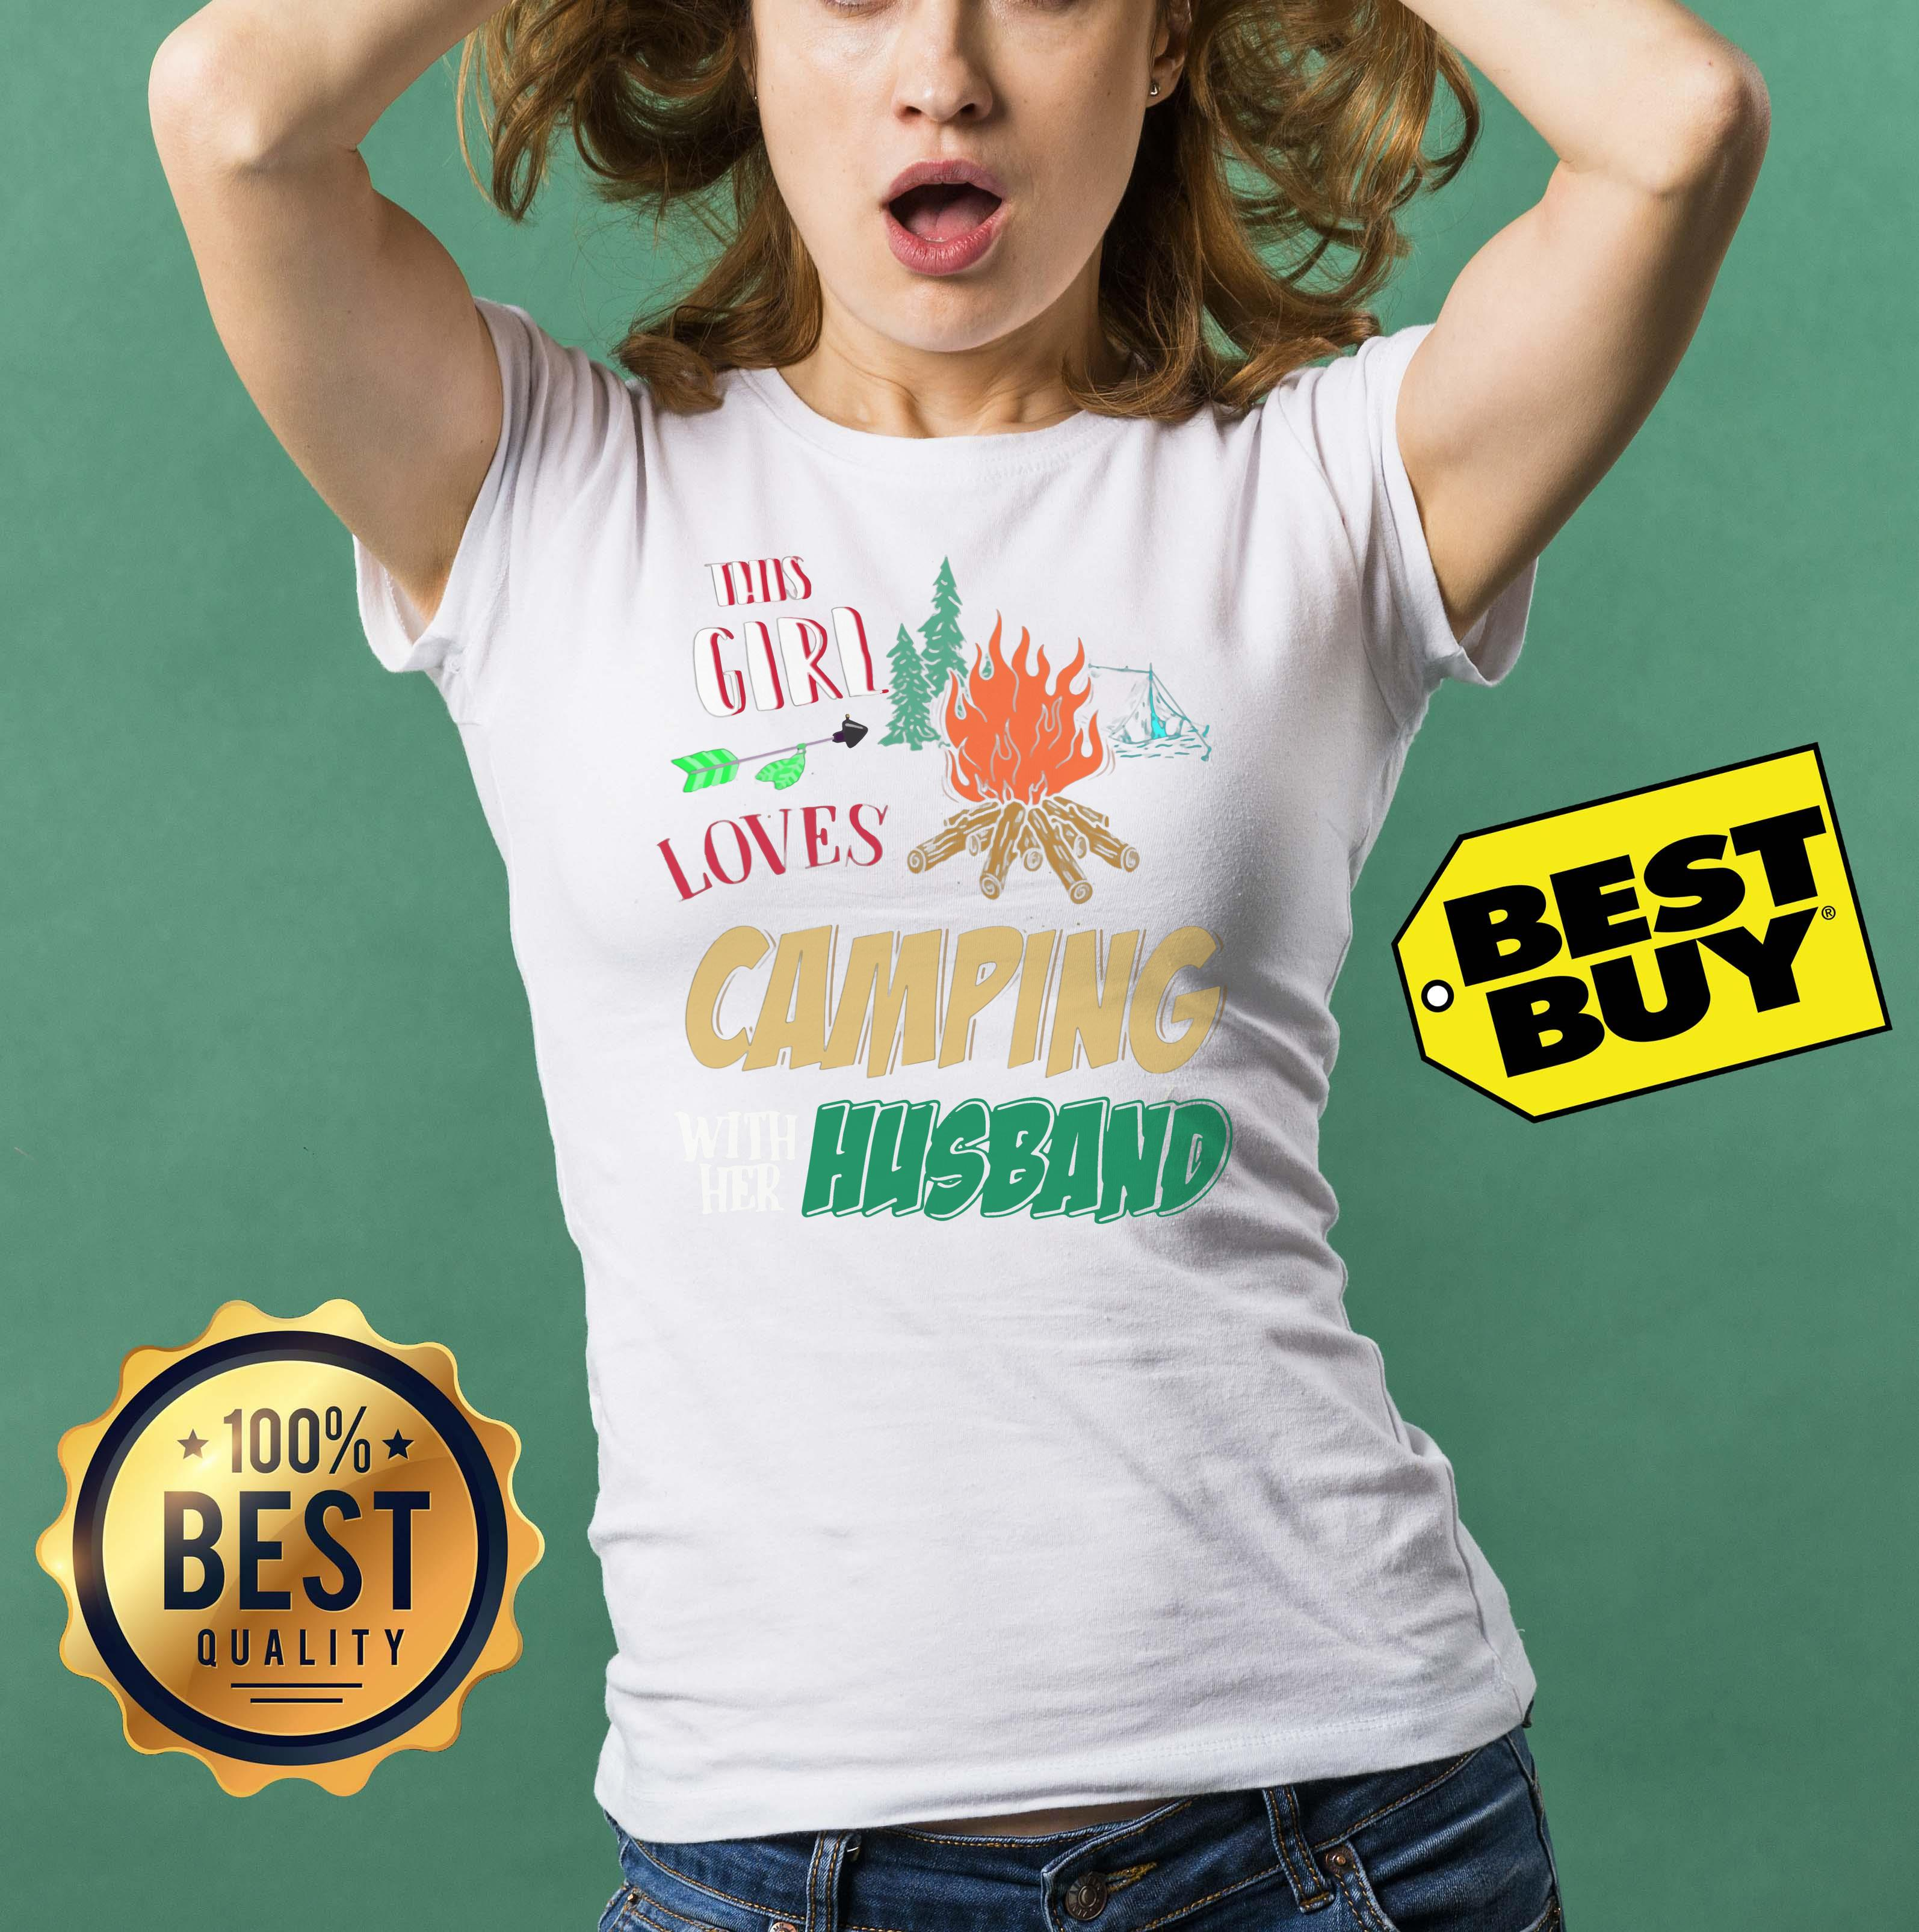 This Girl Loves Camping With Her Husband funny ladies tee